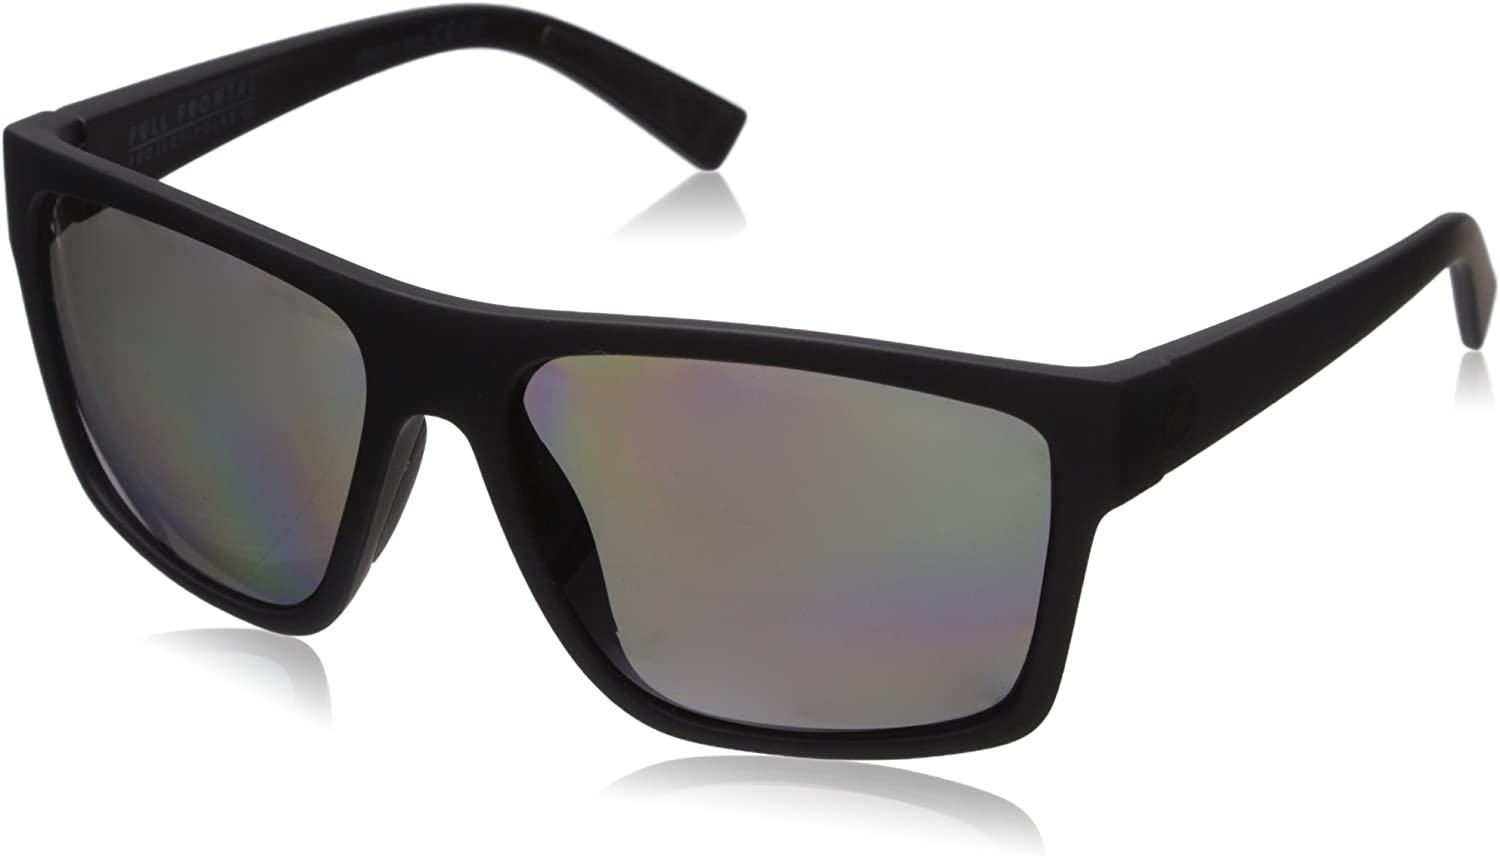 VonZipper Dipstick Polar Polarized Rectangular Sunglasses